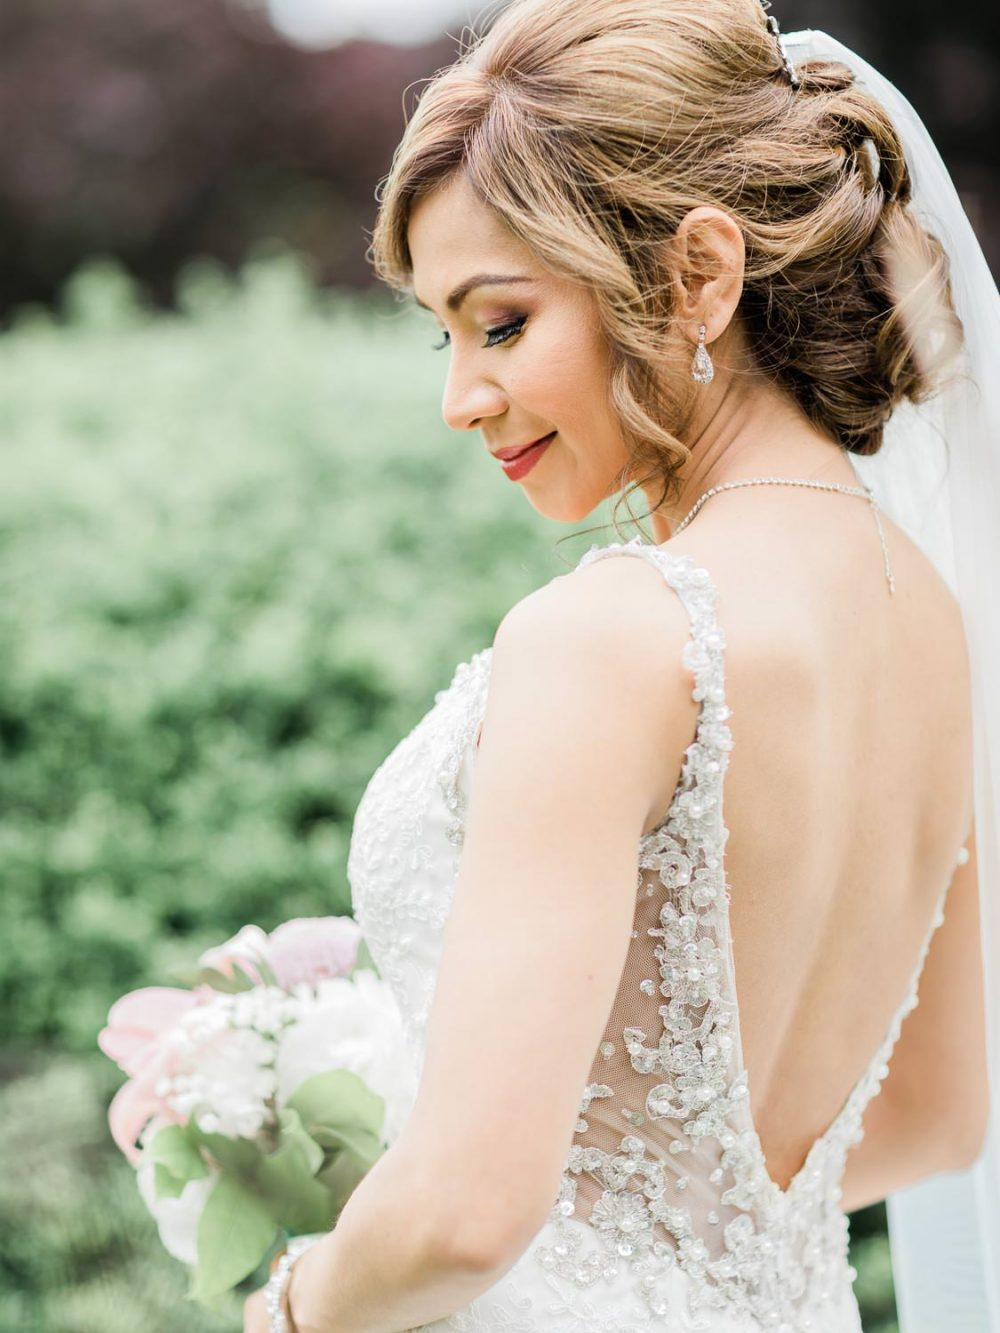 Bride posing with flowers | Vancouver wedding photographer